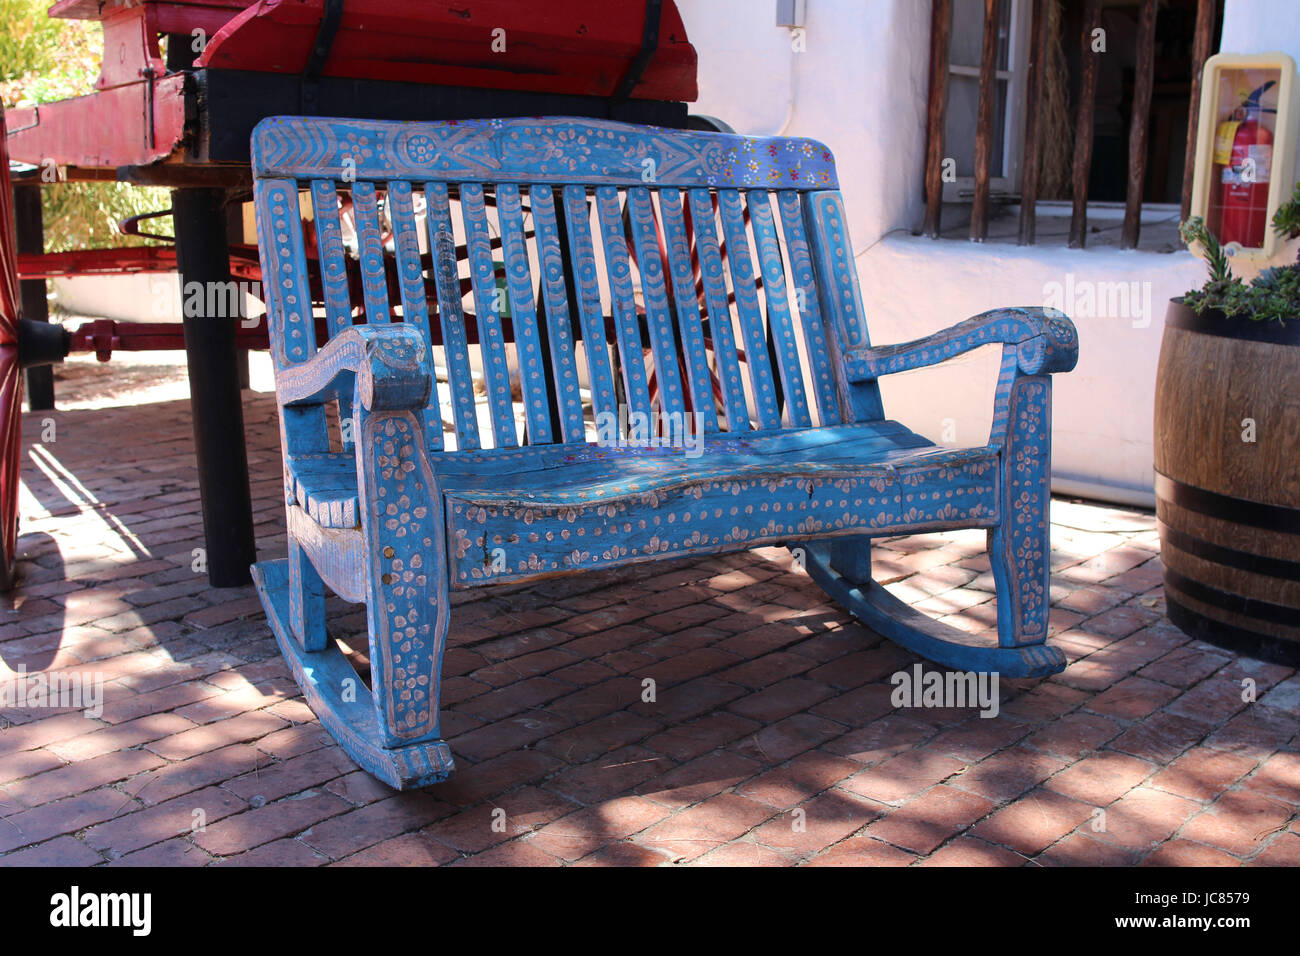 A Hand Crafted Mexican Bench. Old Wood Carved And Painted Rustic Bench. Old  Town Market, San Diego, California USA